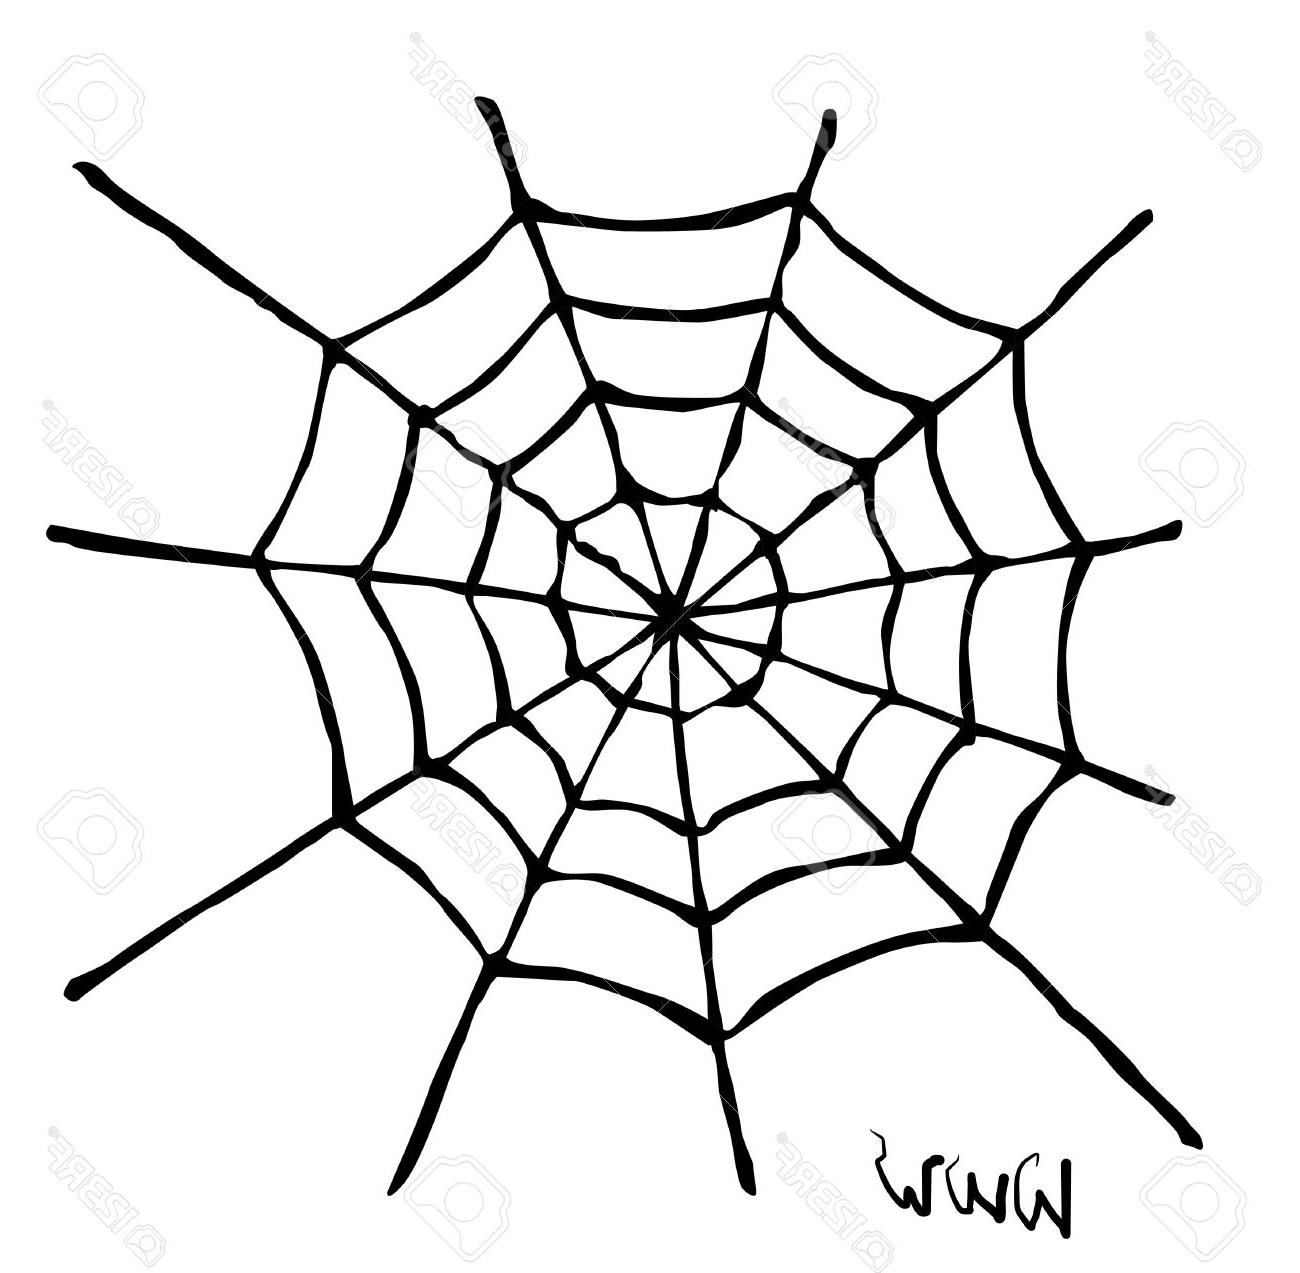 1300x1273 Best Free Creepy Spider Web Over White Background Stock Vector